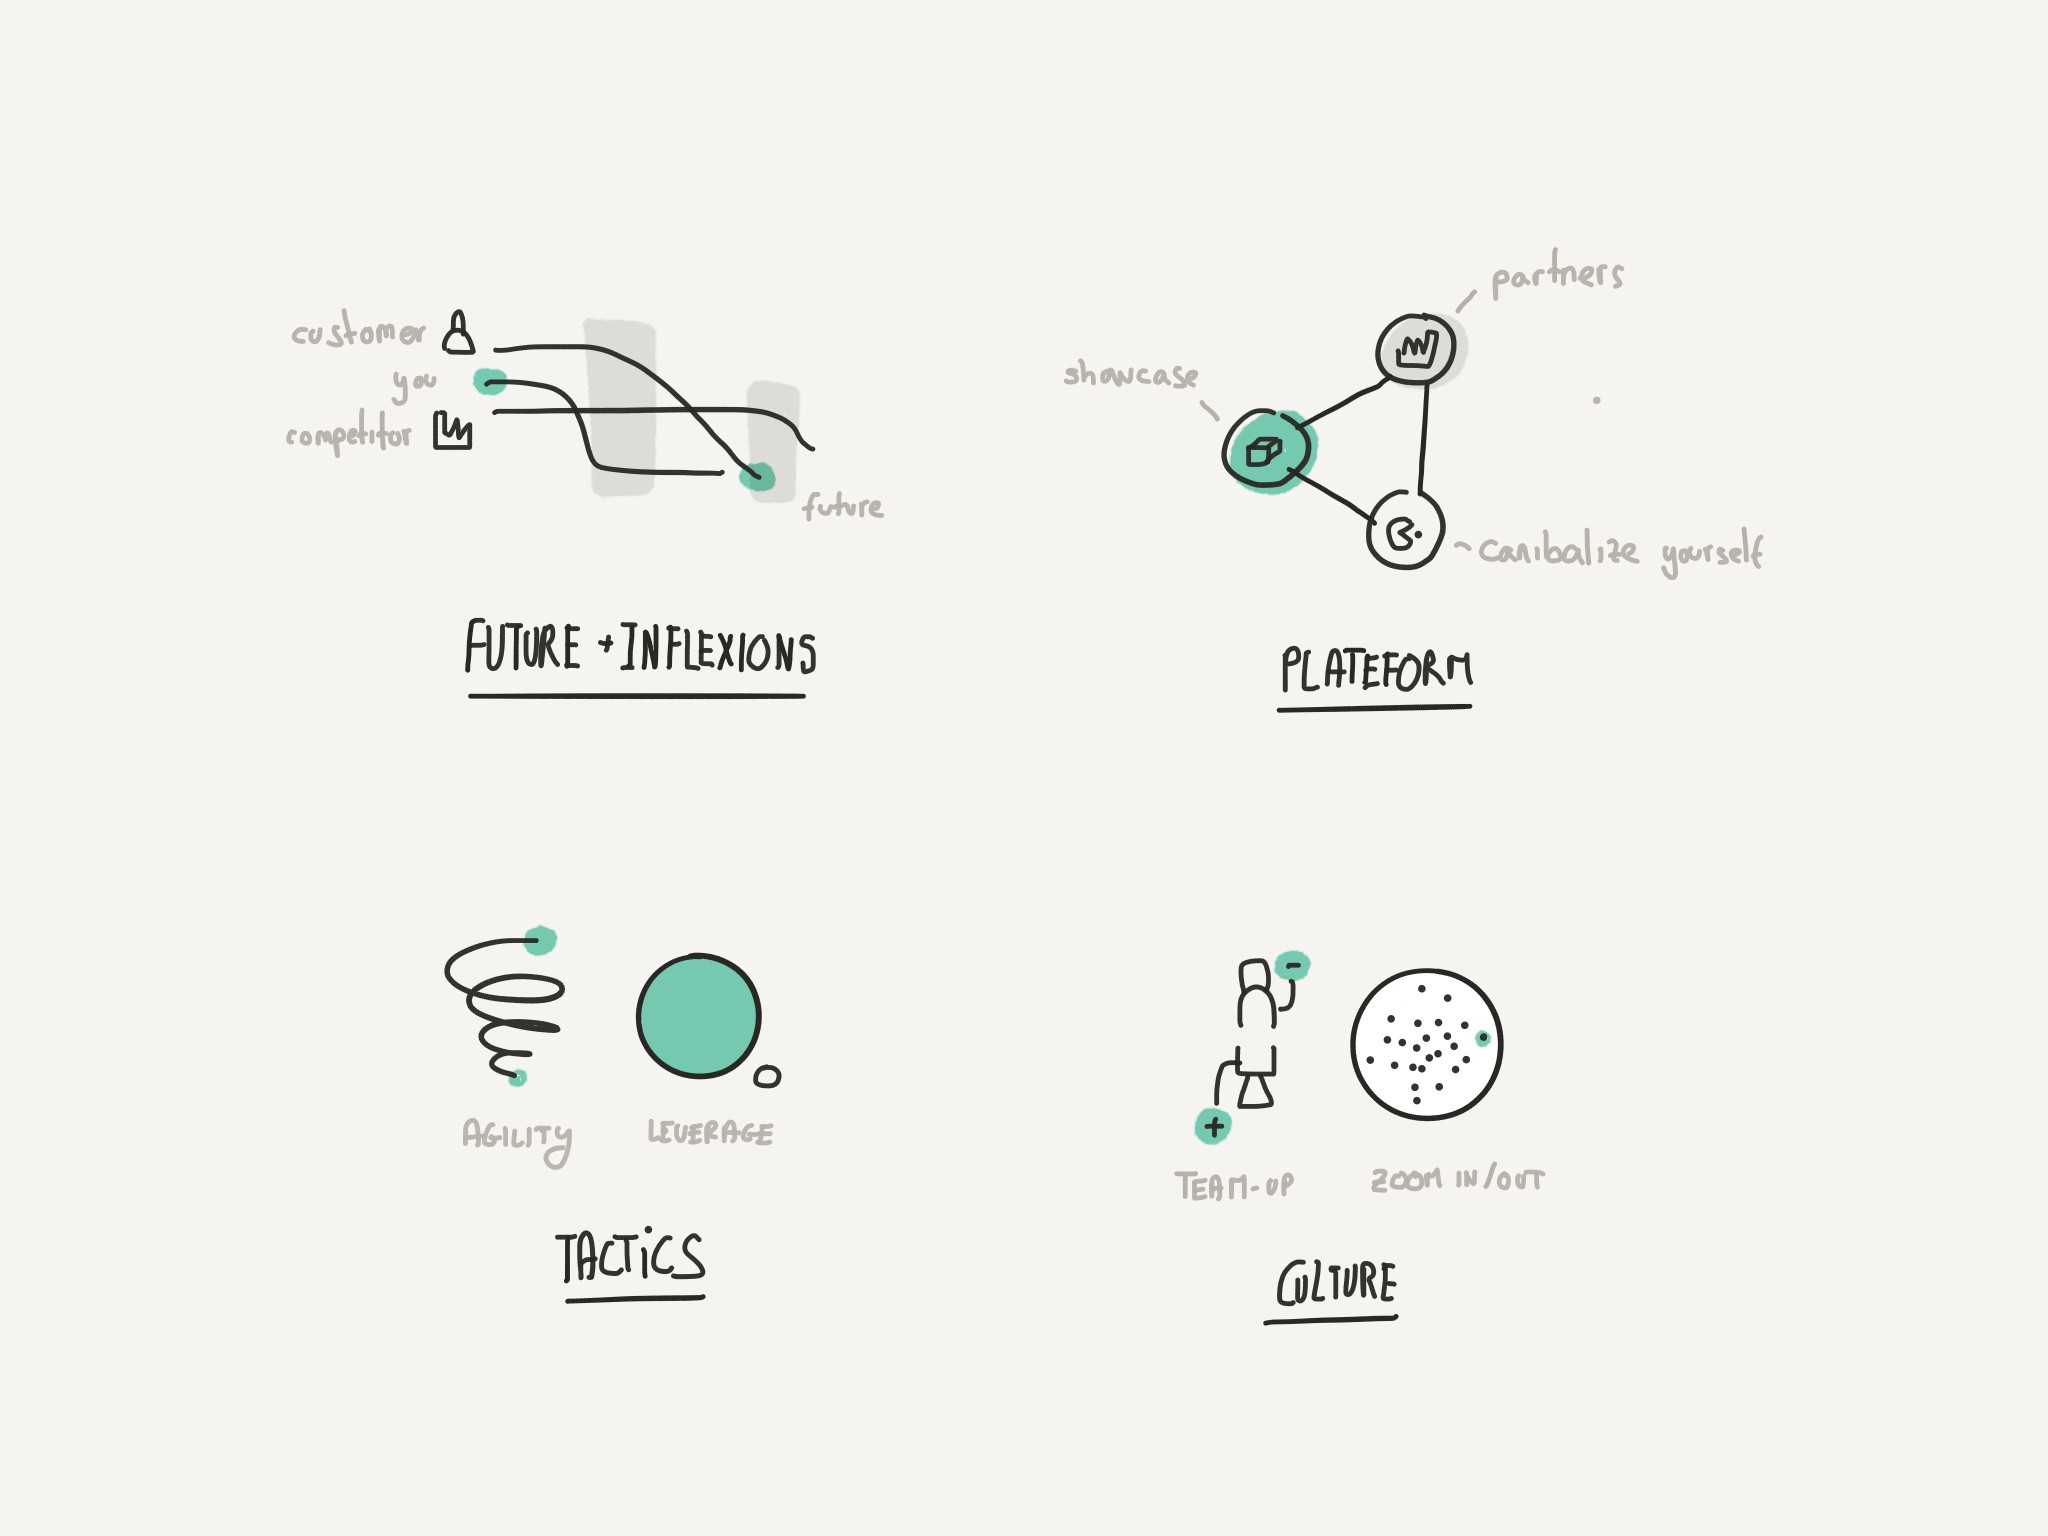 A Visual Summary Of The Strategy Rules Service Design Magazine